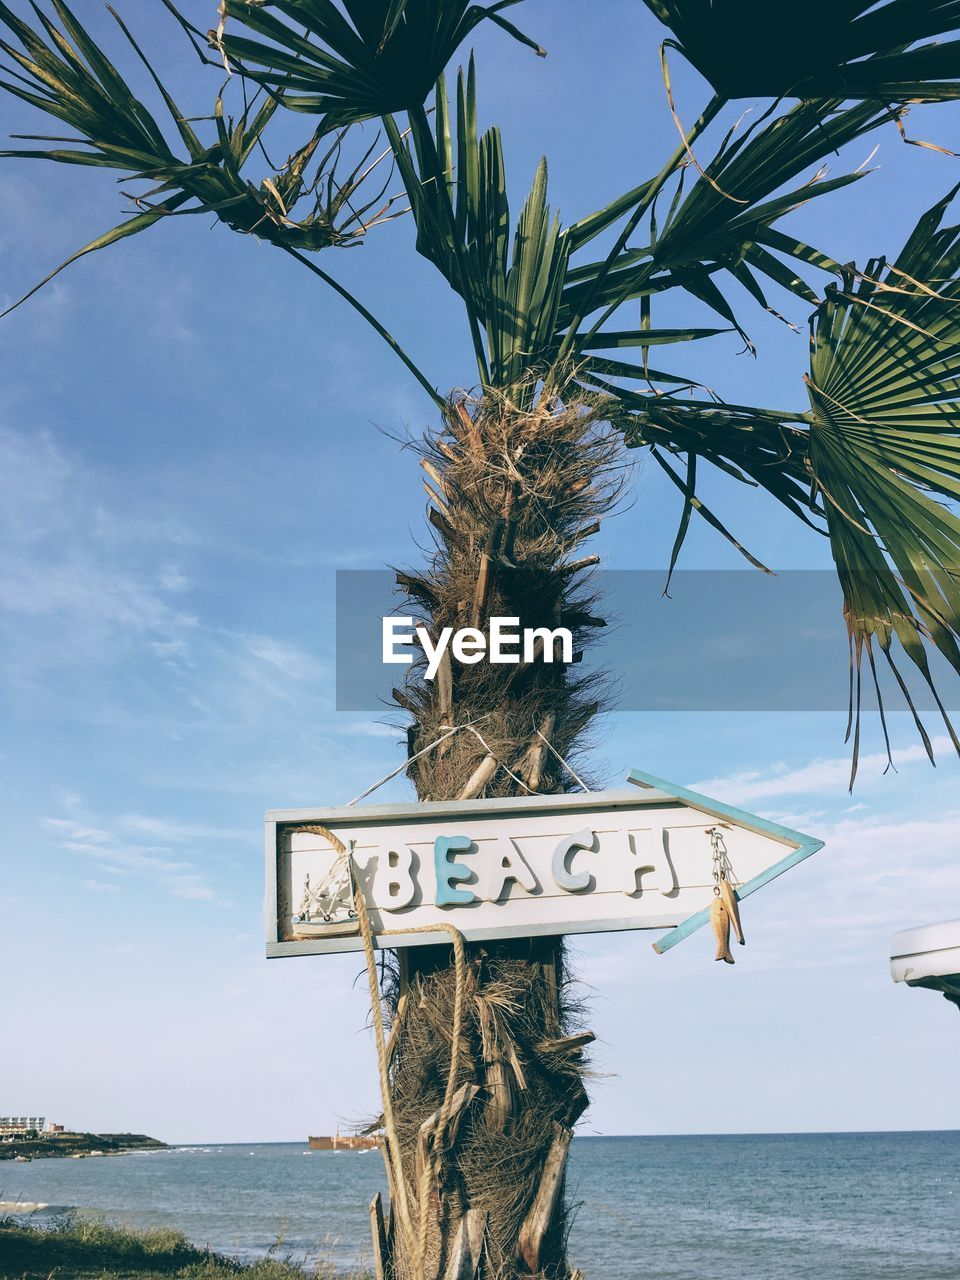 sky, communication, sign, tree, water, text, nature, sea, plant, western script, information, palm tree, tropical climate, day, guidance, no people, information sign, horizon over water, beach, outdoors, coconut palm tree, palm leaf